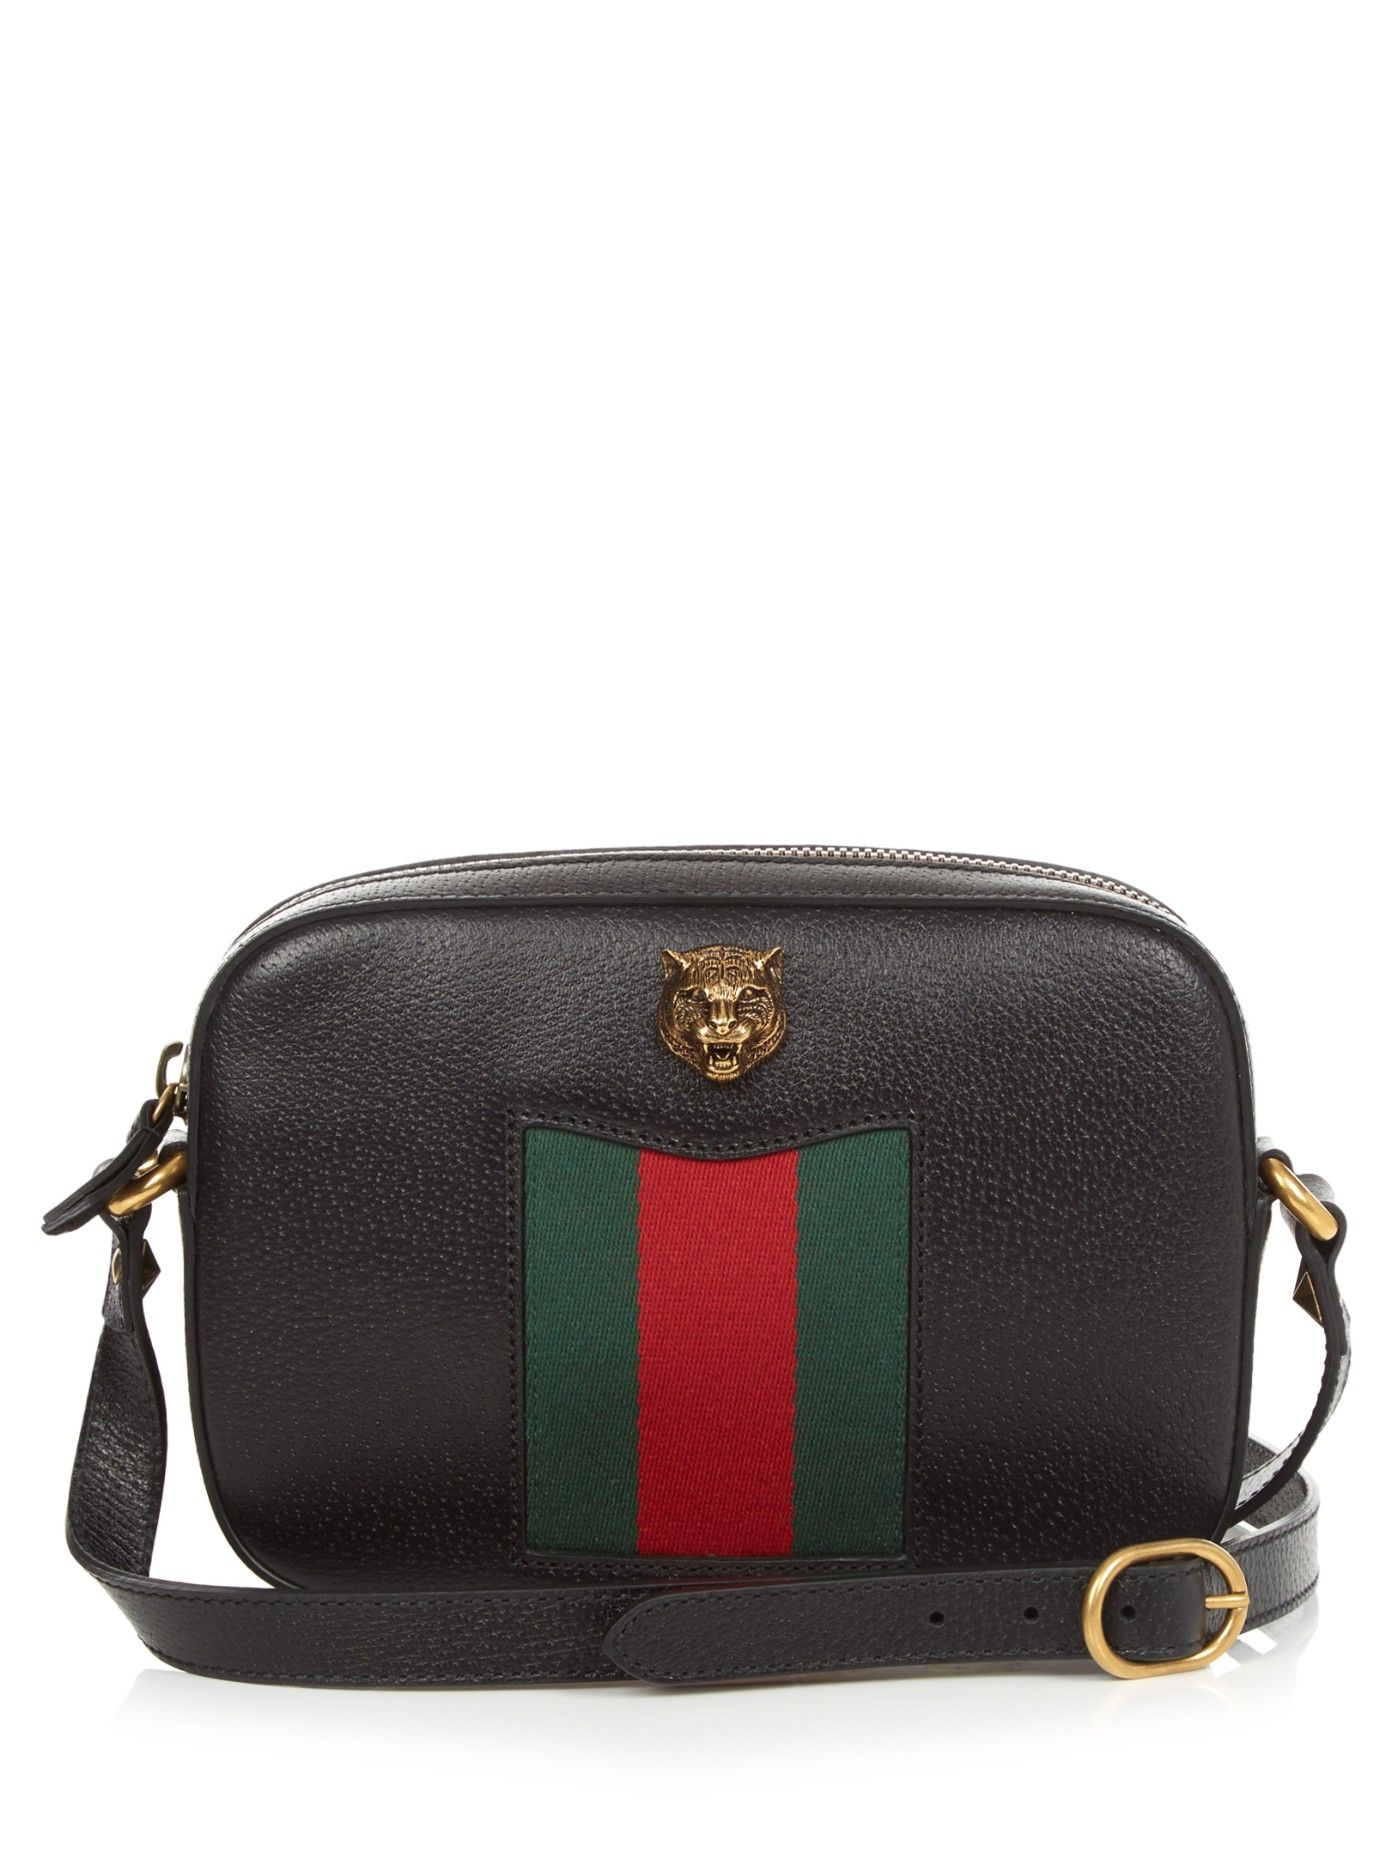 e65eee5c8377f0 Gucci's black grained-leather Animalier bag blends classic house codes with  a new, whimsical charm.